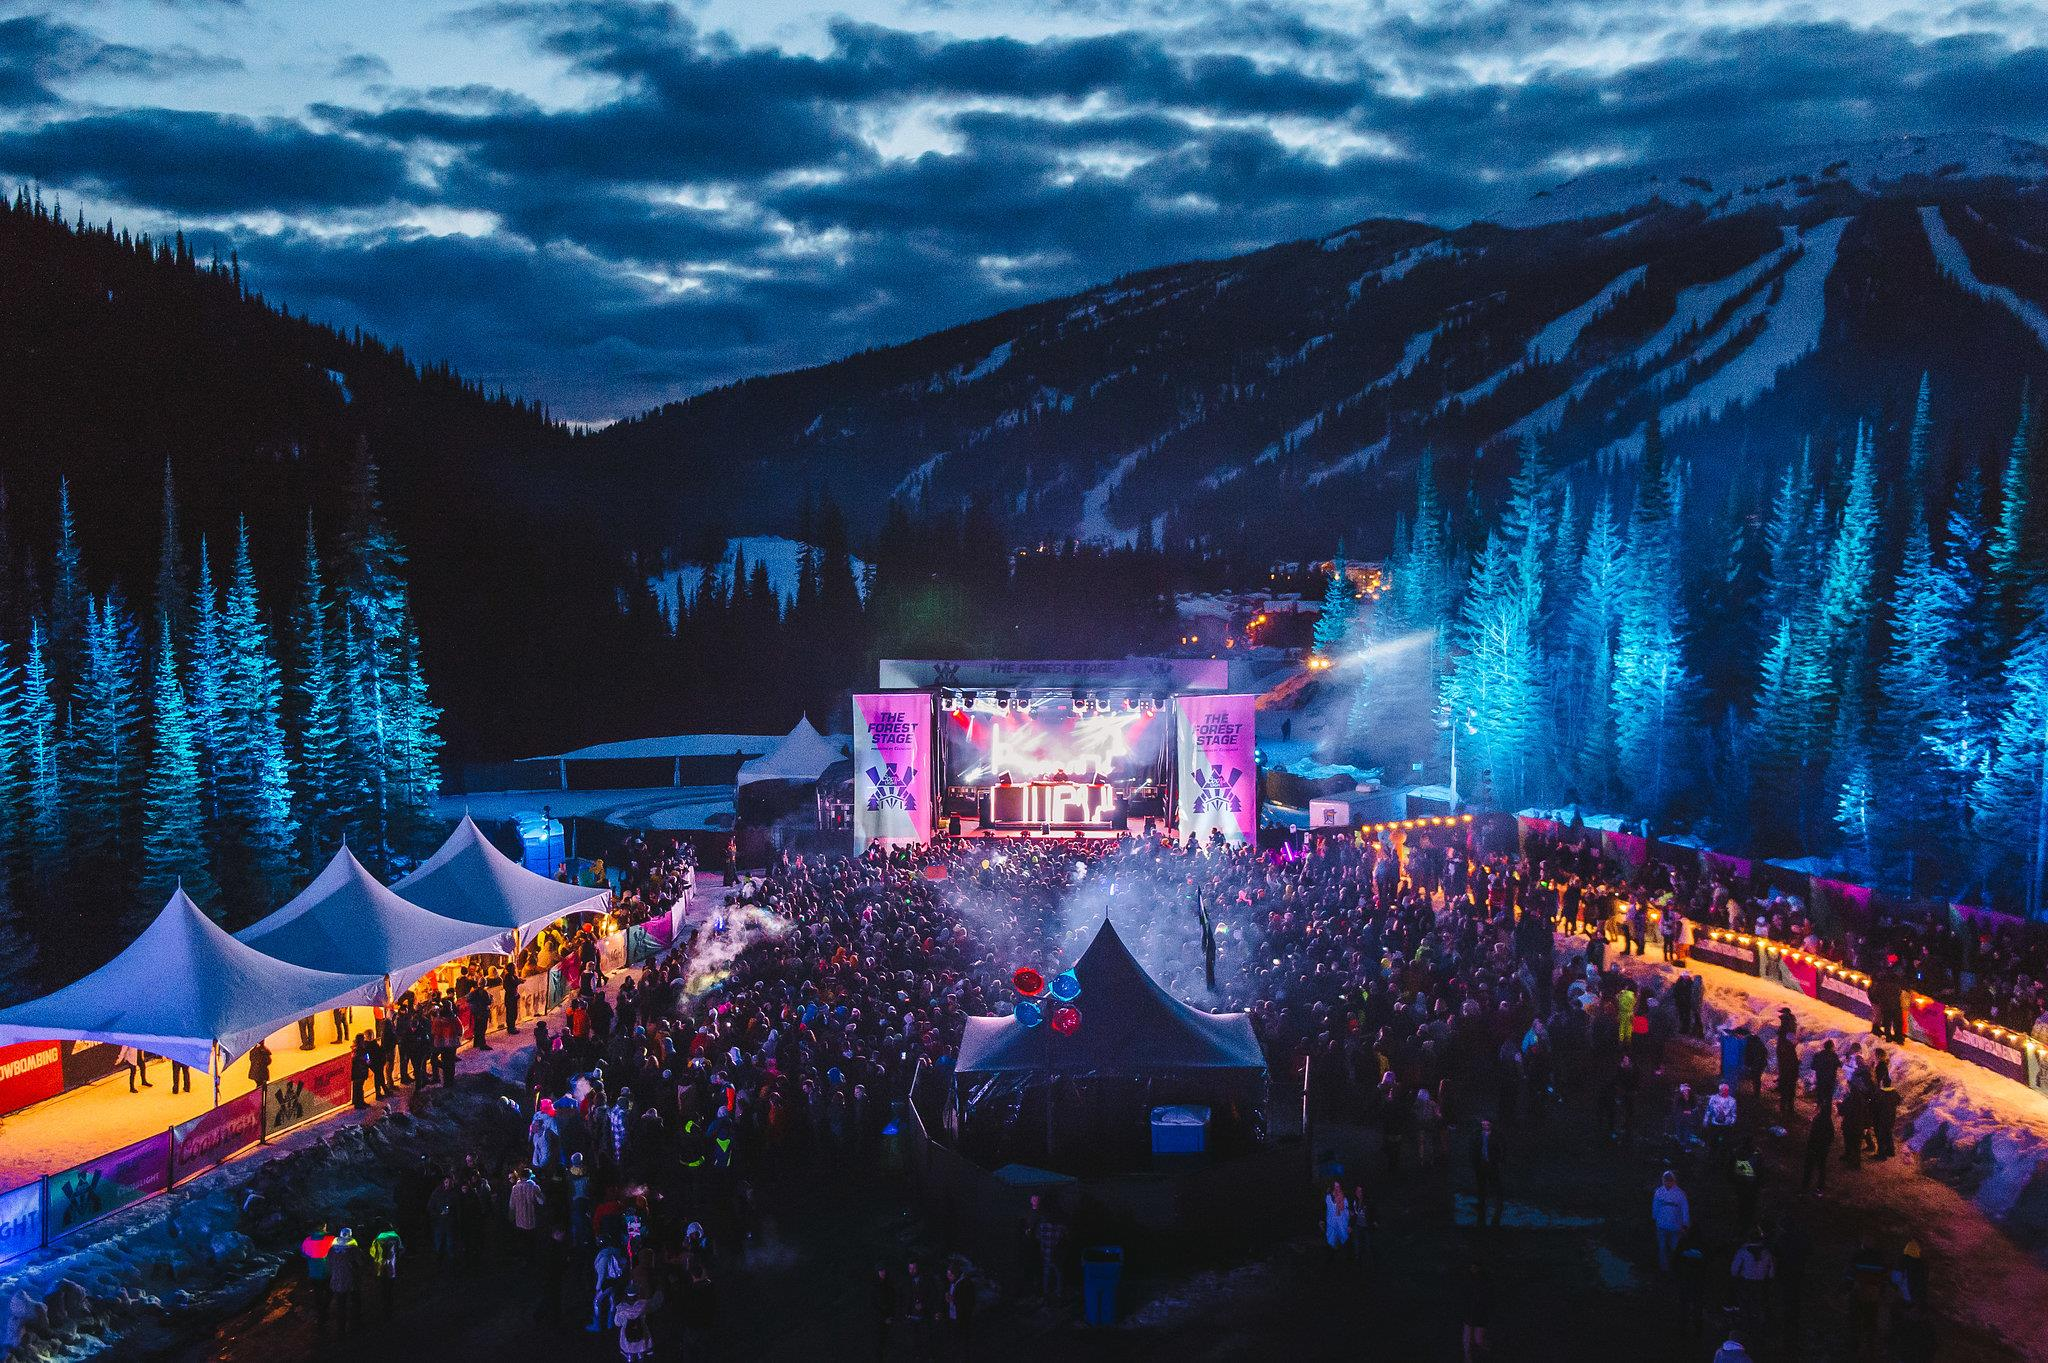 Snowbombing Canada 2018 Returns With An Even Fresher Lineup Than Before